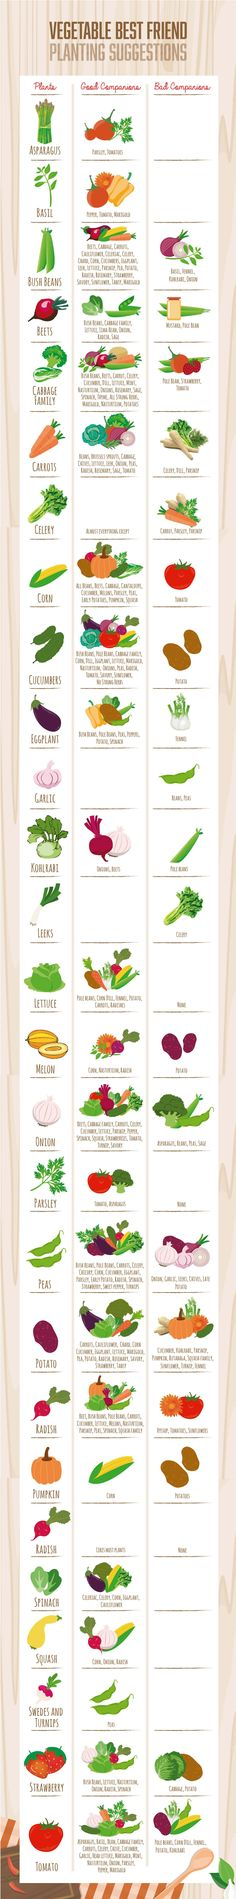 Companion Planting Visual Companion Planting Chart (Guide) - Are you vegetables lonely in the garden? Use this handy visual companion planting chart to help you with your gardening design this year! Veg Garden, Edible Garden, Garden Plants, Vegetable Gardening, Veggie Gardens, Fruit Garden, Vegetable Design, Vegetable Ideas, Vegetable Bed